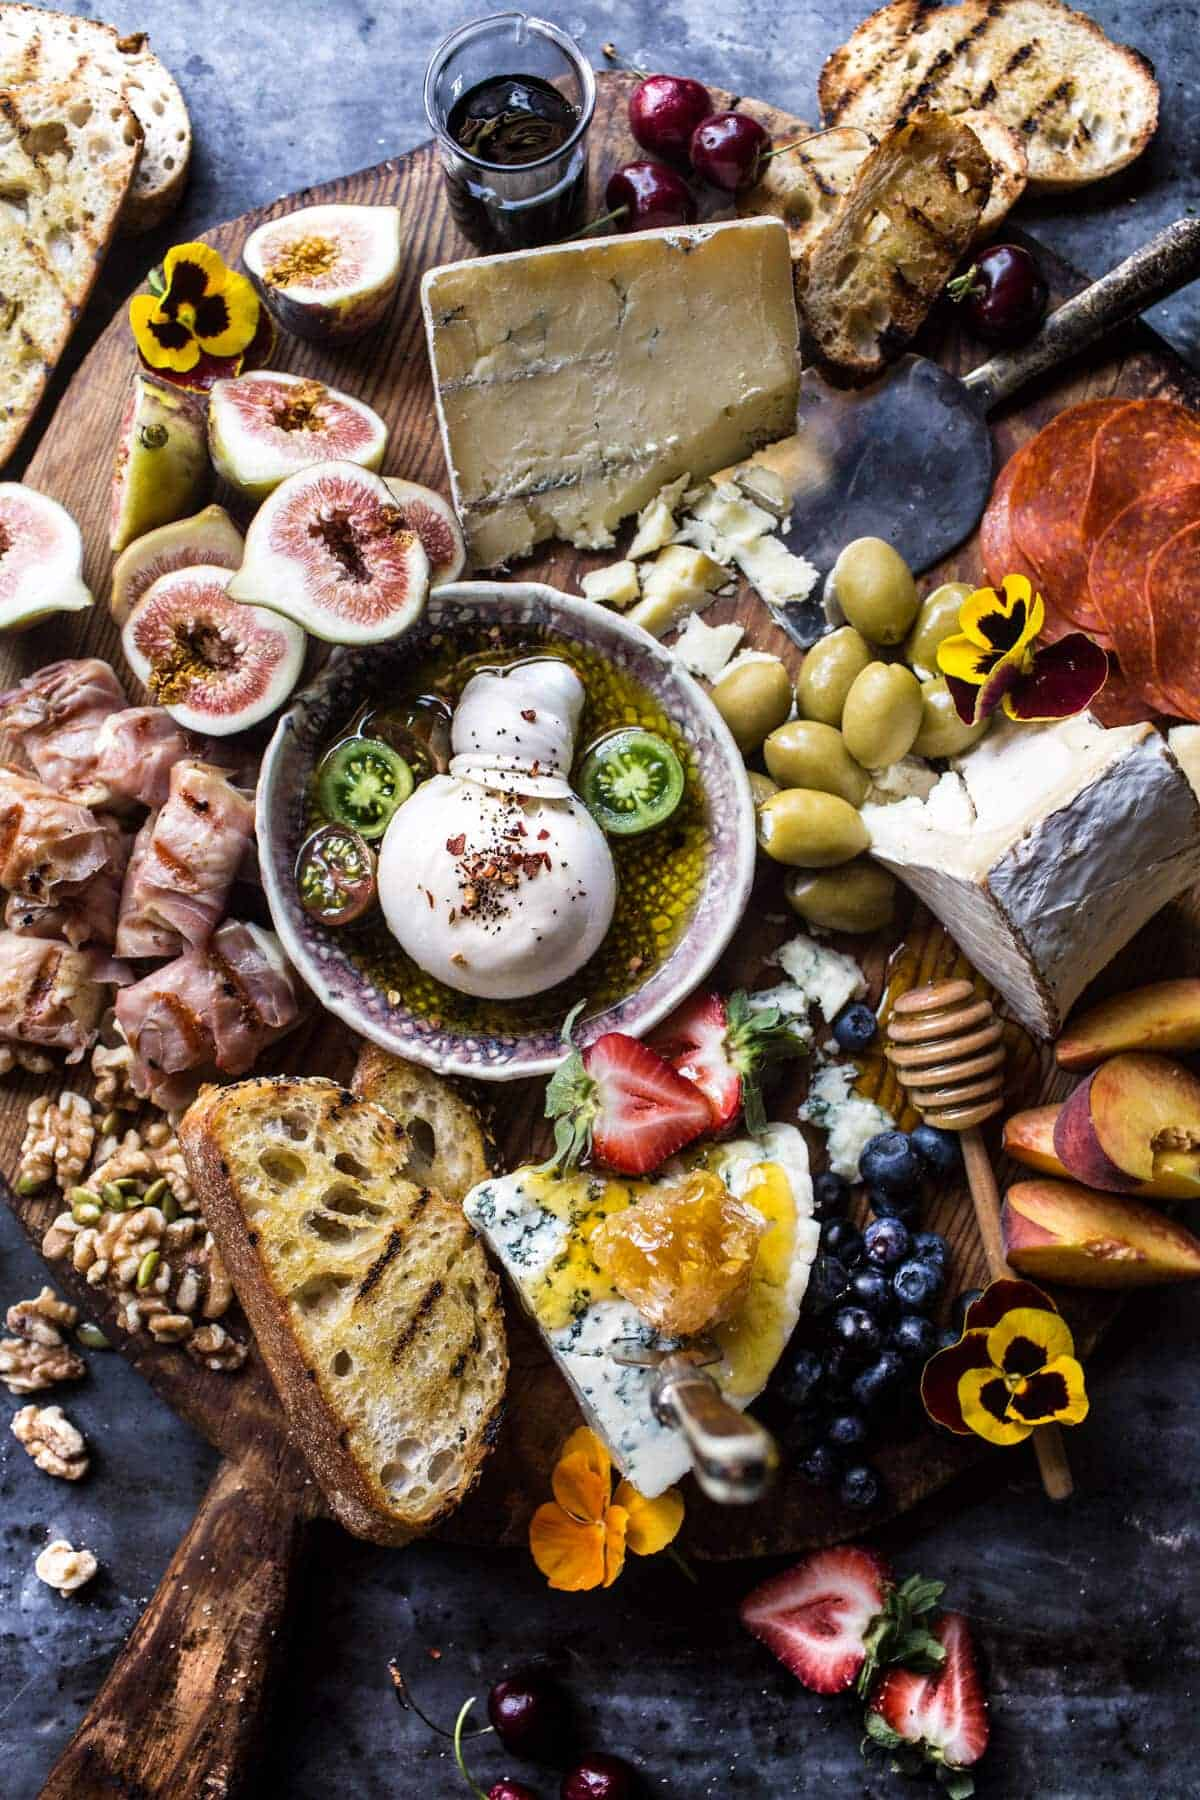 Simple Summer Cheese Board | halfbakedharvest.com @hbharvest